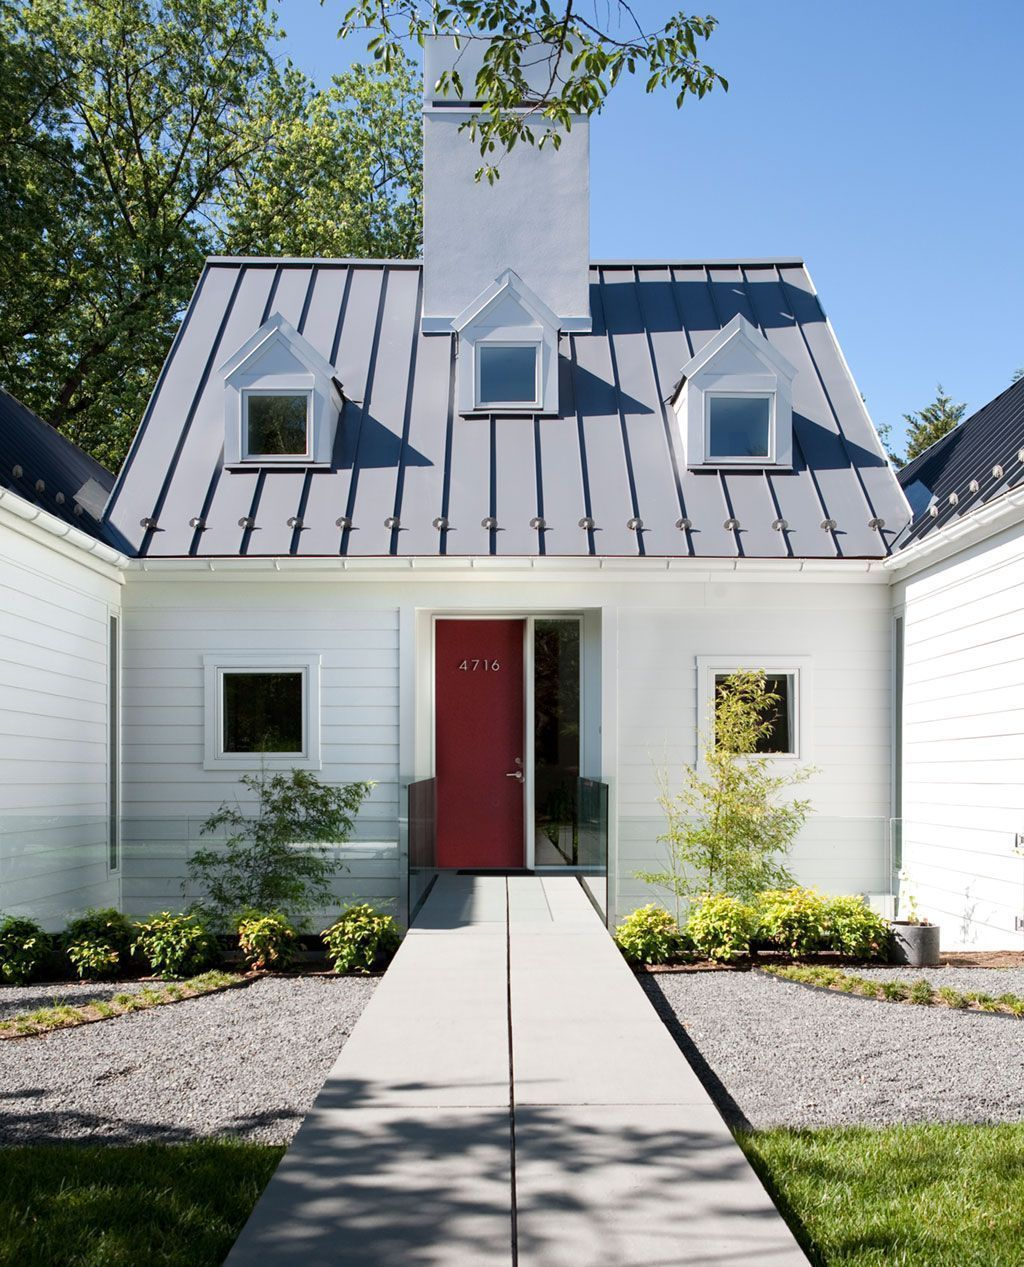 The Cost Of A Standing Seam Metal Roof Plus Pros Cons 2020 With Images Standing Seam Metal Roof Metal Roof Houses Metal Roof